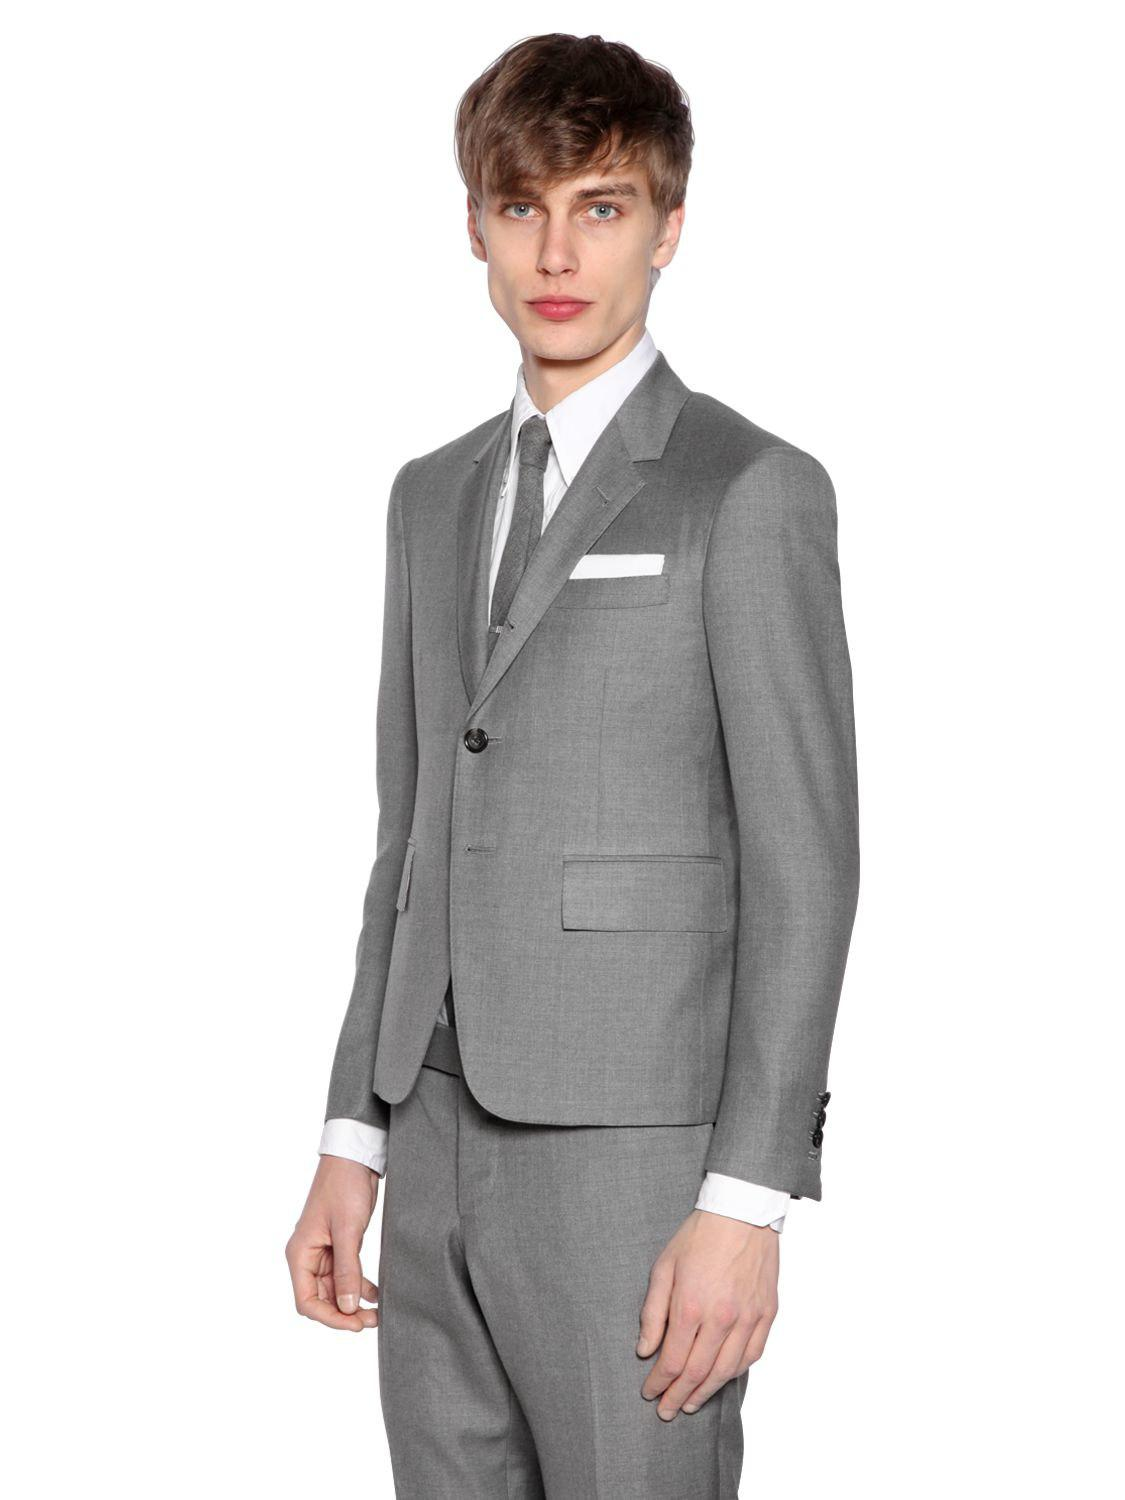 a004e6c24c8f Lyst - Thom Browne Skinny Fit Light Wool Gabardine Suit in Gray for Men -  Save 3%